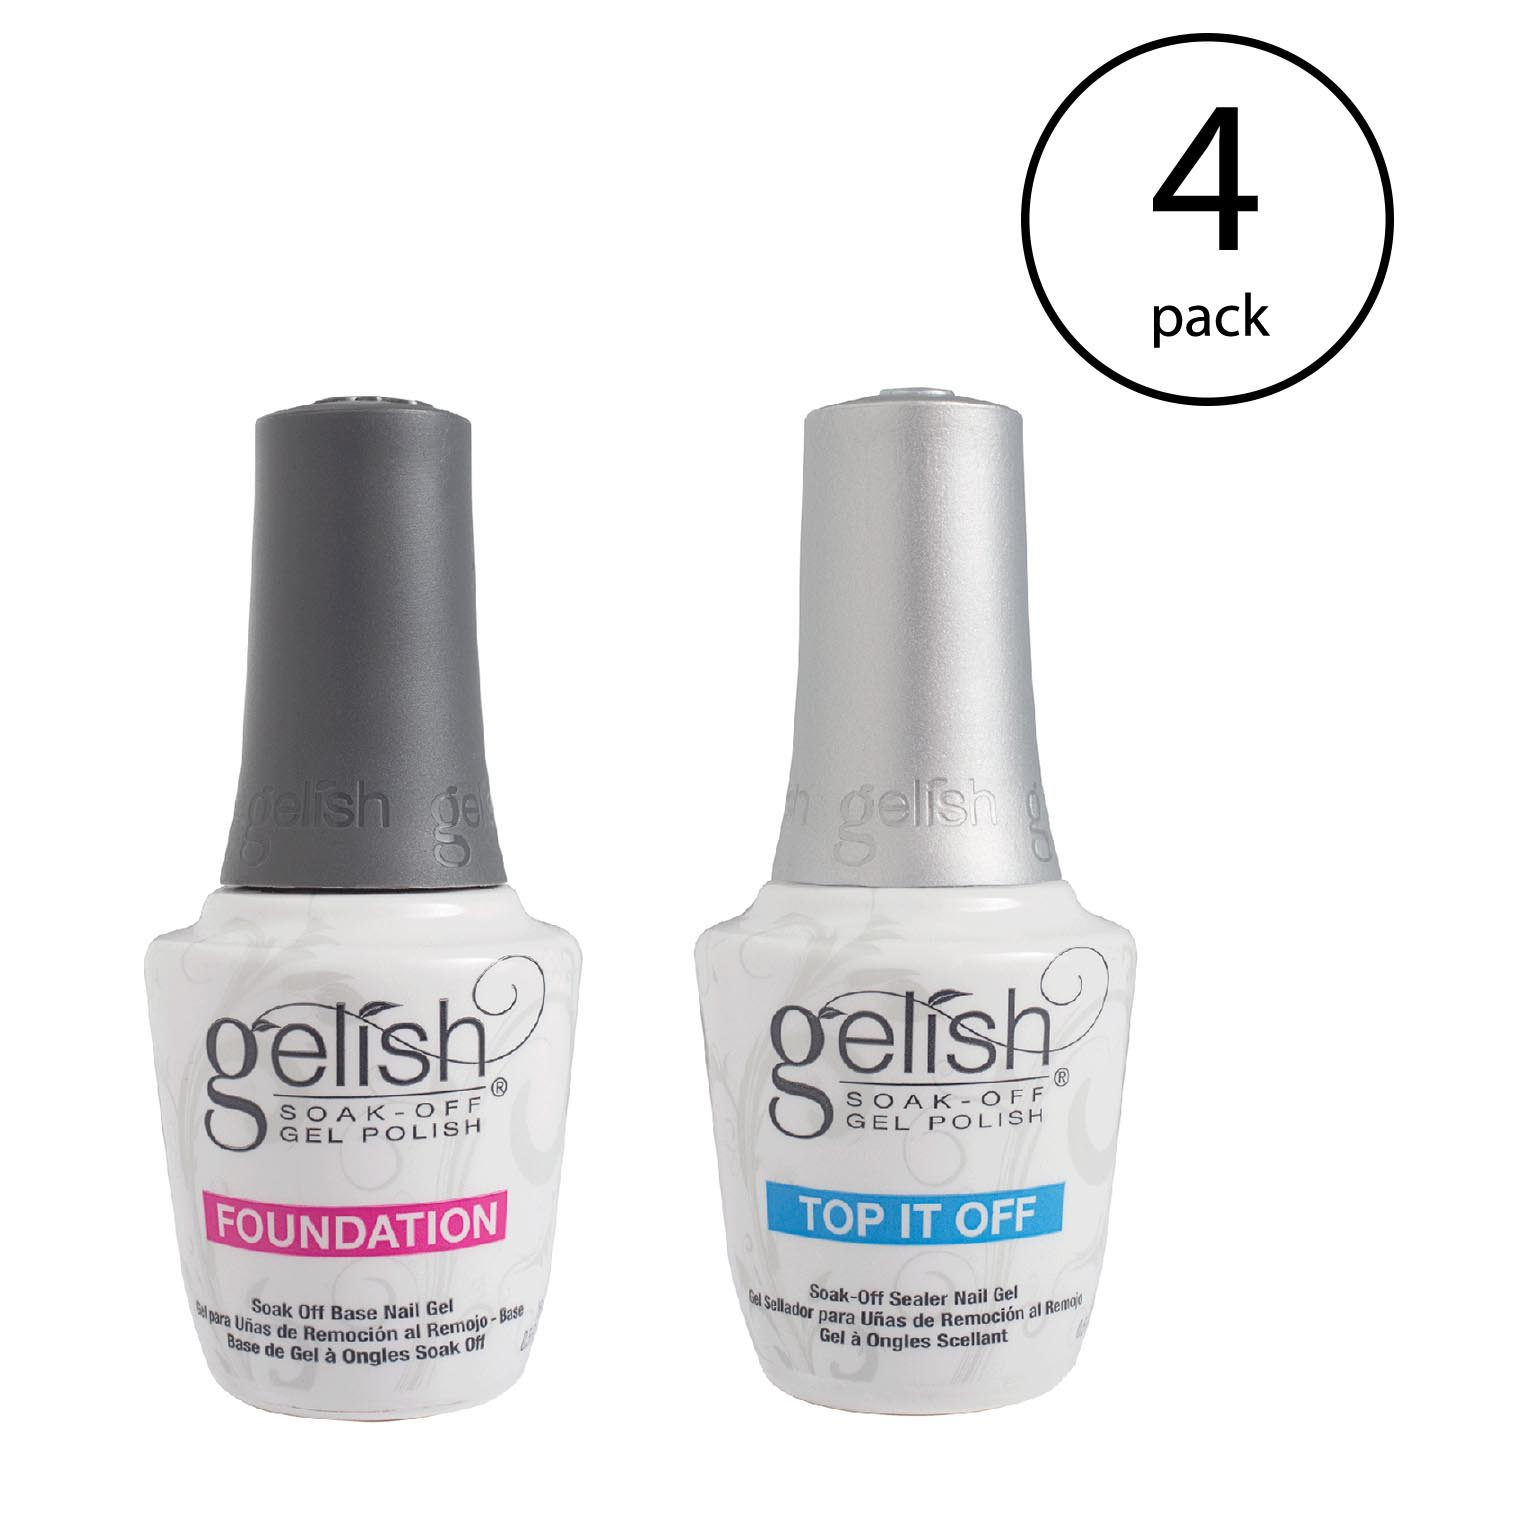 Gelish Dynamic Duo Foundation Base & Top It Off Sealer Gel Nail Polish (4 Pack)